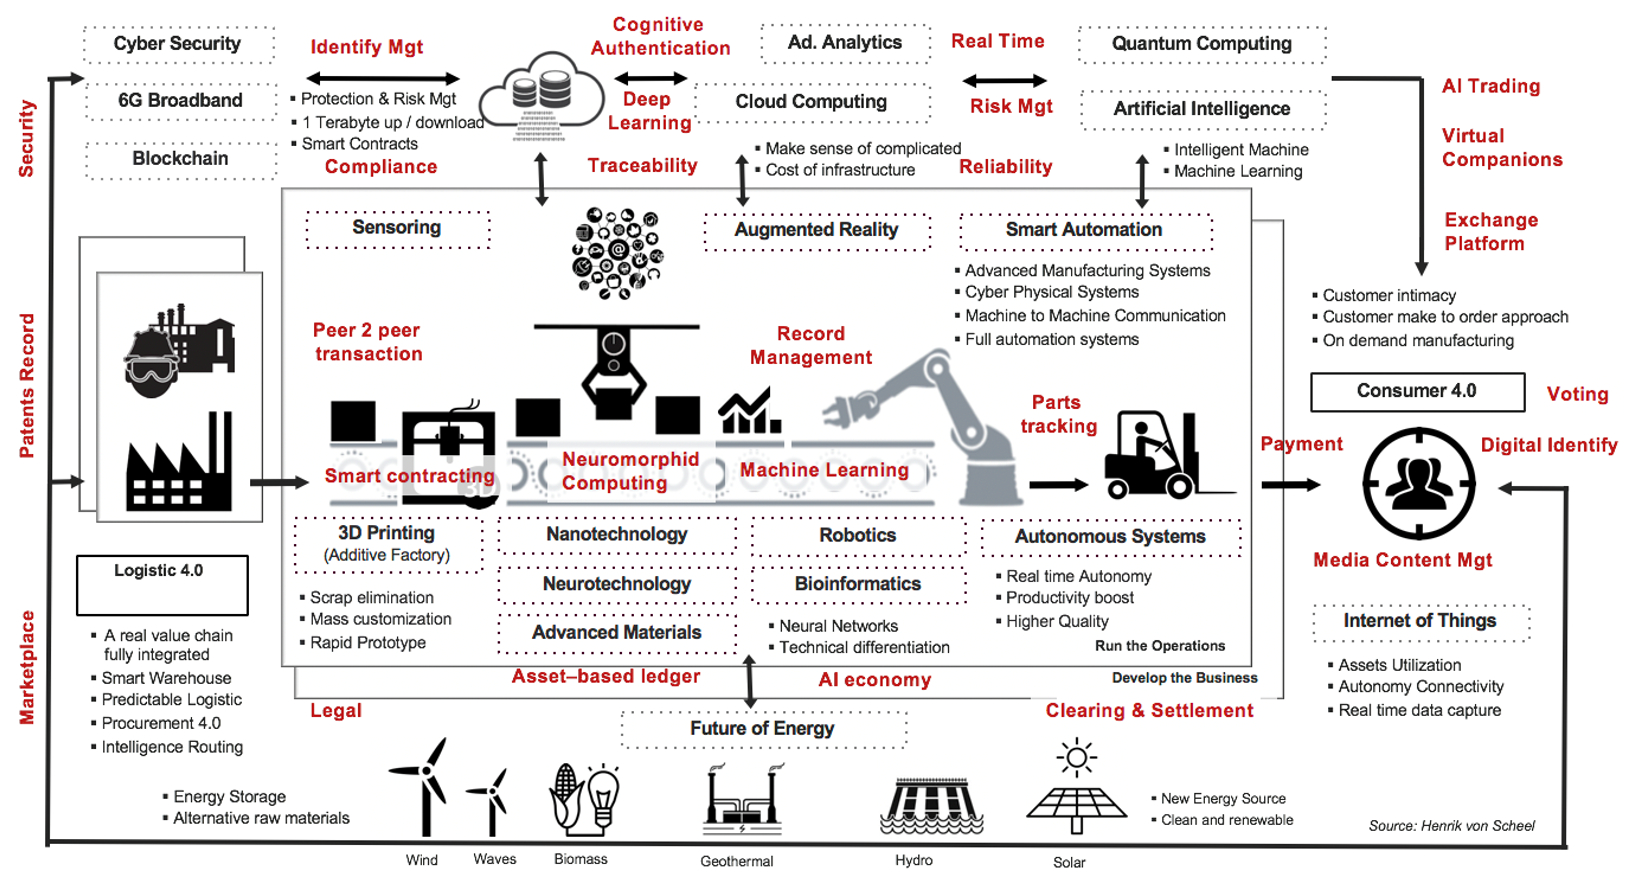 A 'Smart Factory' ecosystem explained in one chart - image courtesy of Henrik Von Scheel